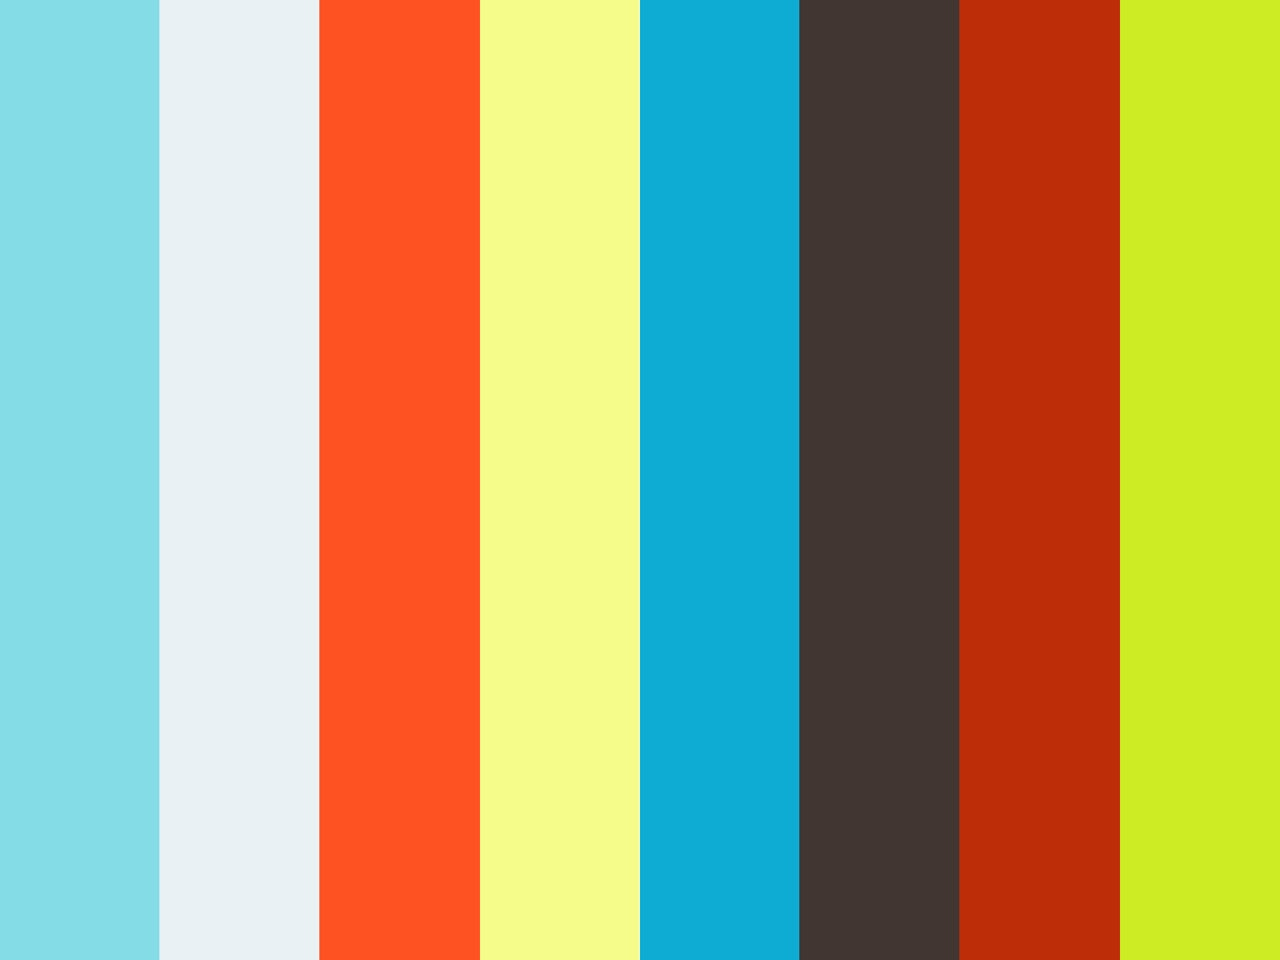 Peoplesoft hrm training guide ebook array payroll training free online sap payroll training rh payrolltrainingtodachia blogspot com fandeluxe Image collections